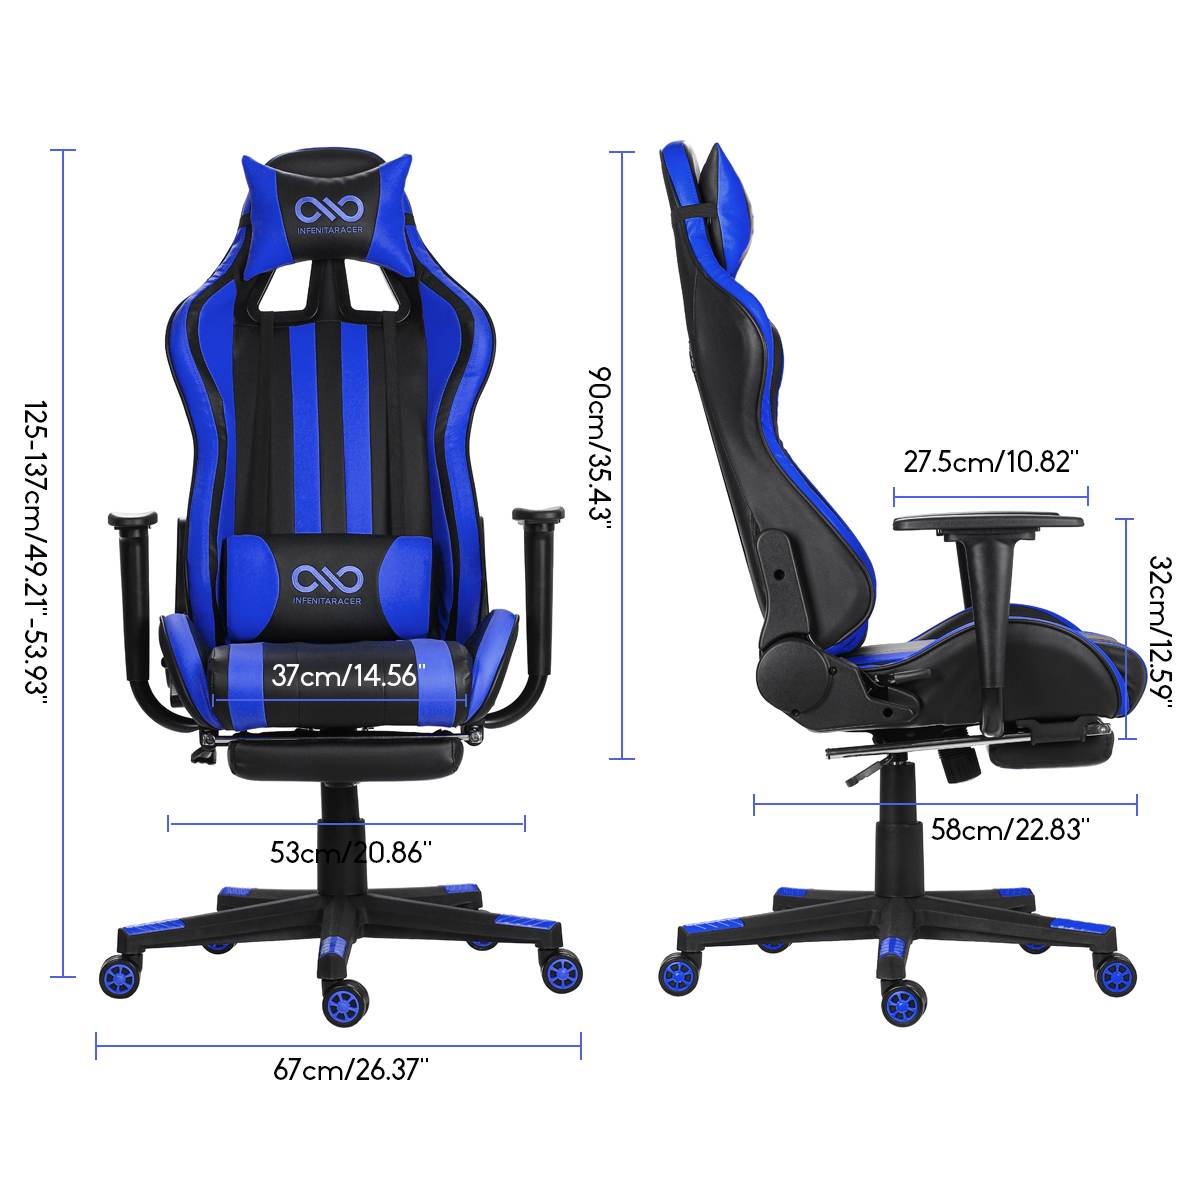 H4e2ee36f58f74846b3e21afda3369d89X - Office Gaming Chair PVC Household Armchair Lift and Swivel Function Ergonomic Office Computer Chair Wcg Gamer Chairs